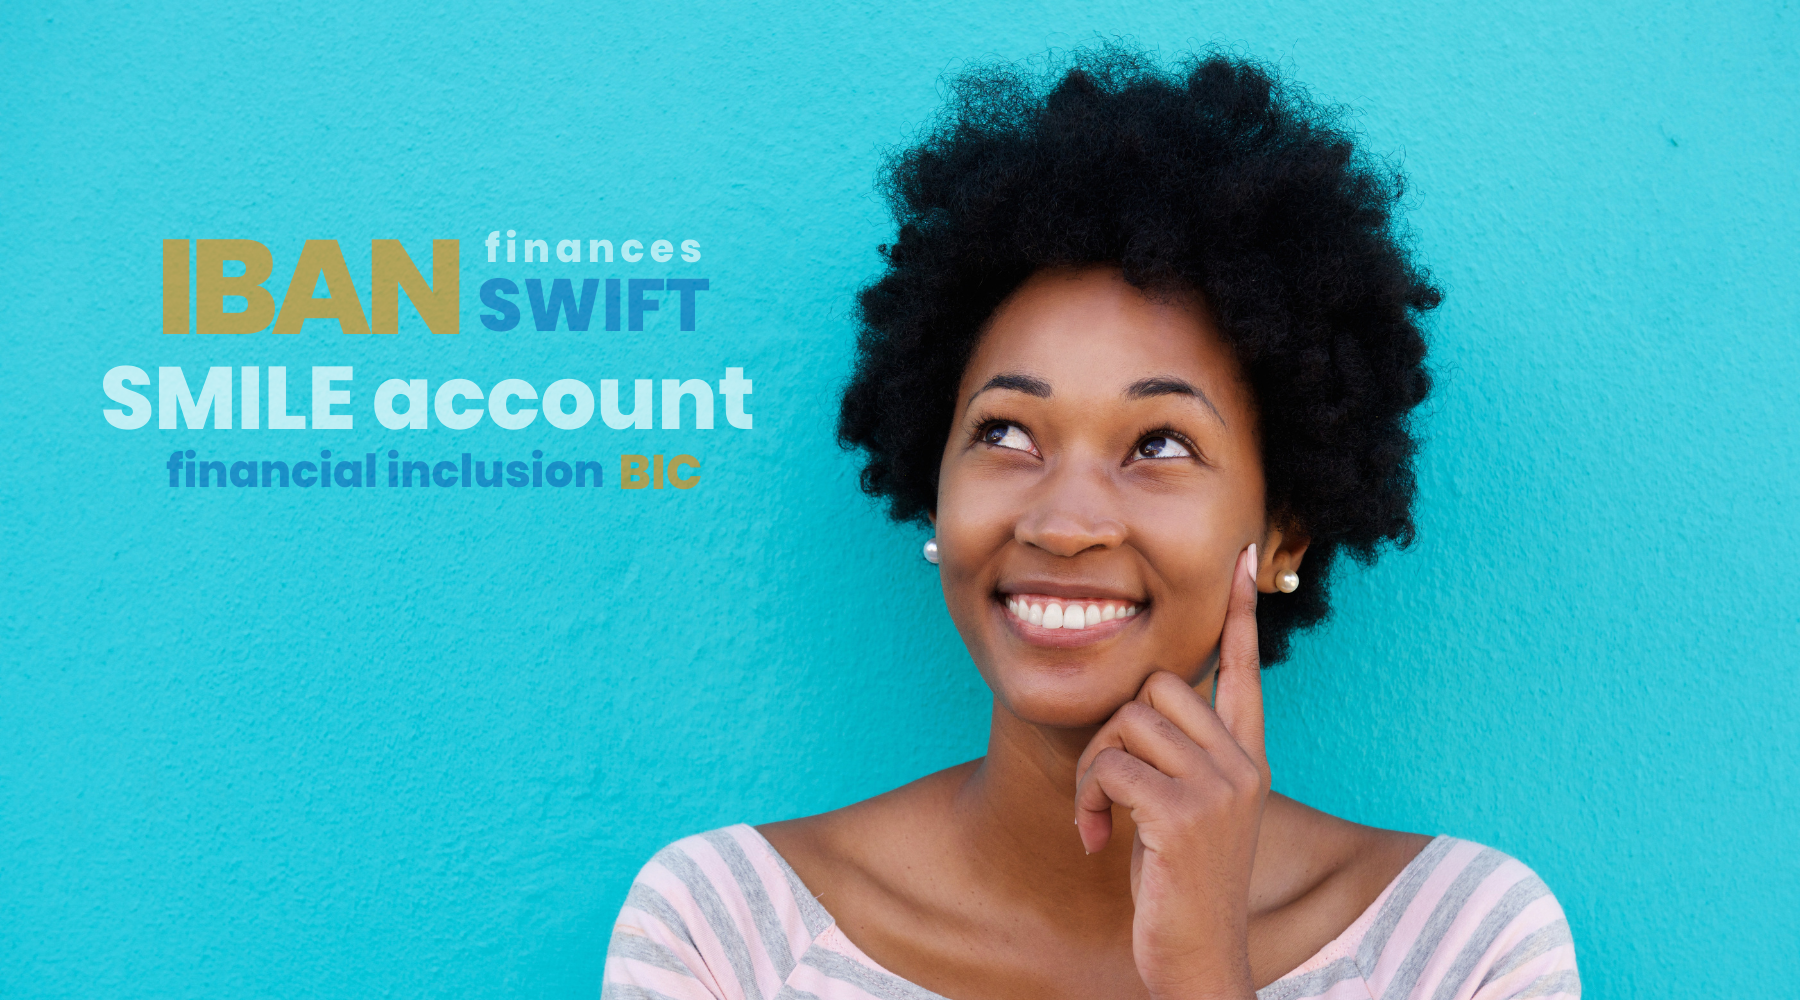 What is the IBAN and SWIFT or BIC of a current account?